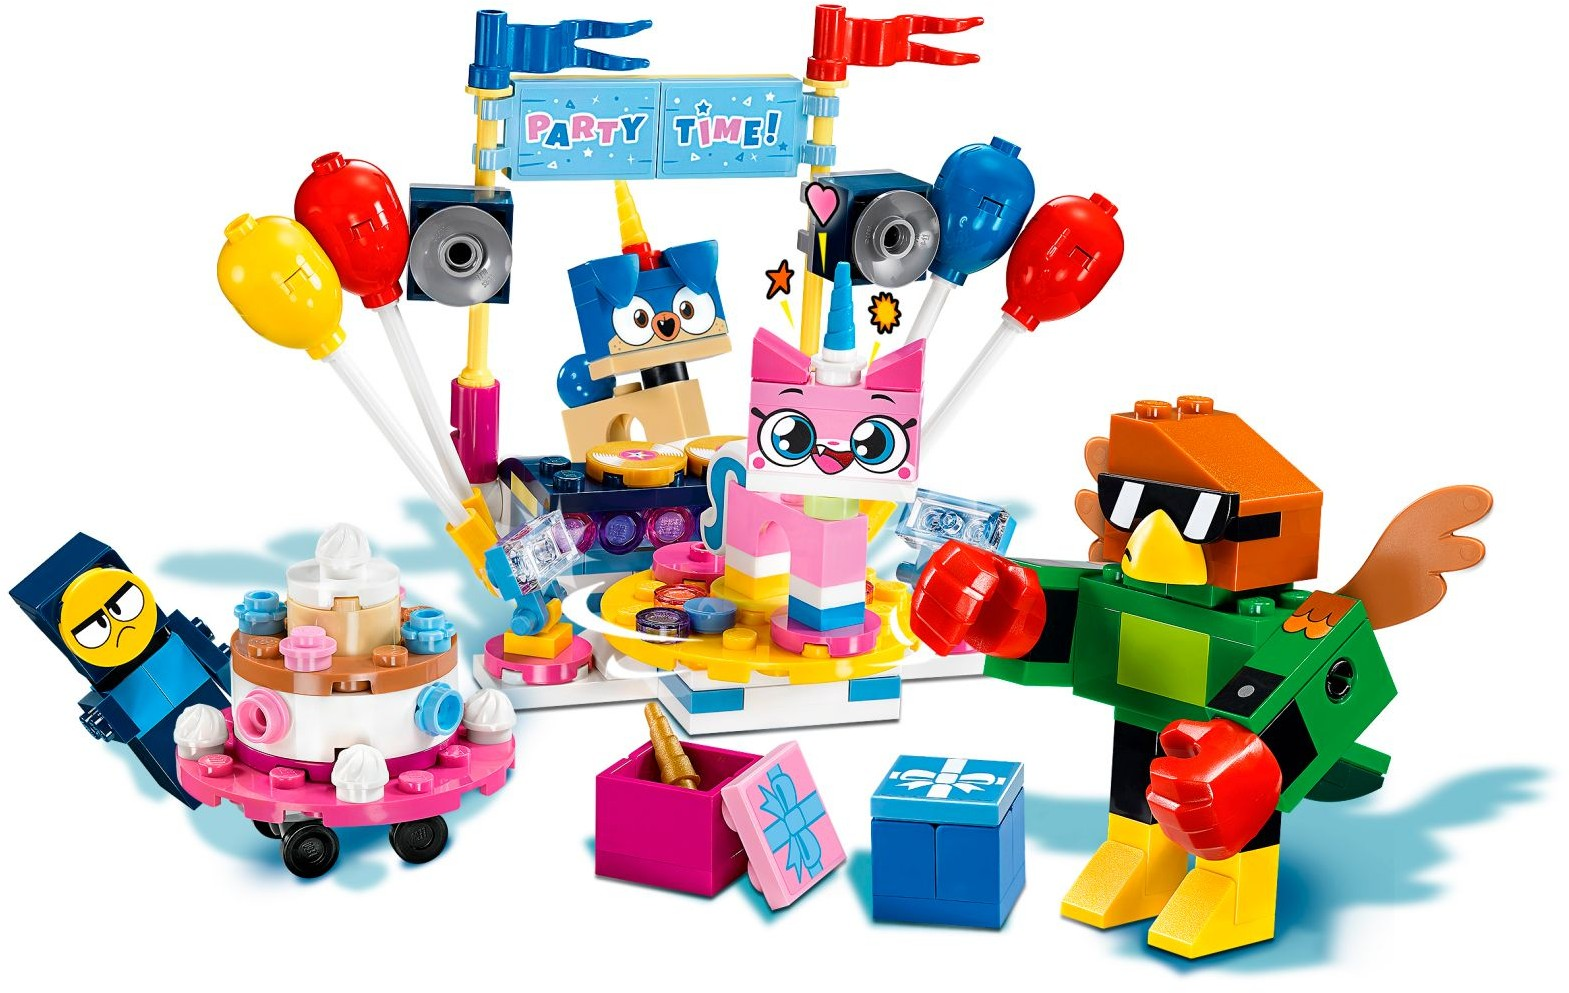 41453 LEGO Unikitty Party Time